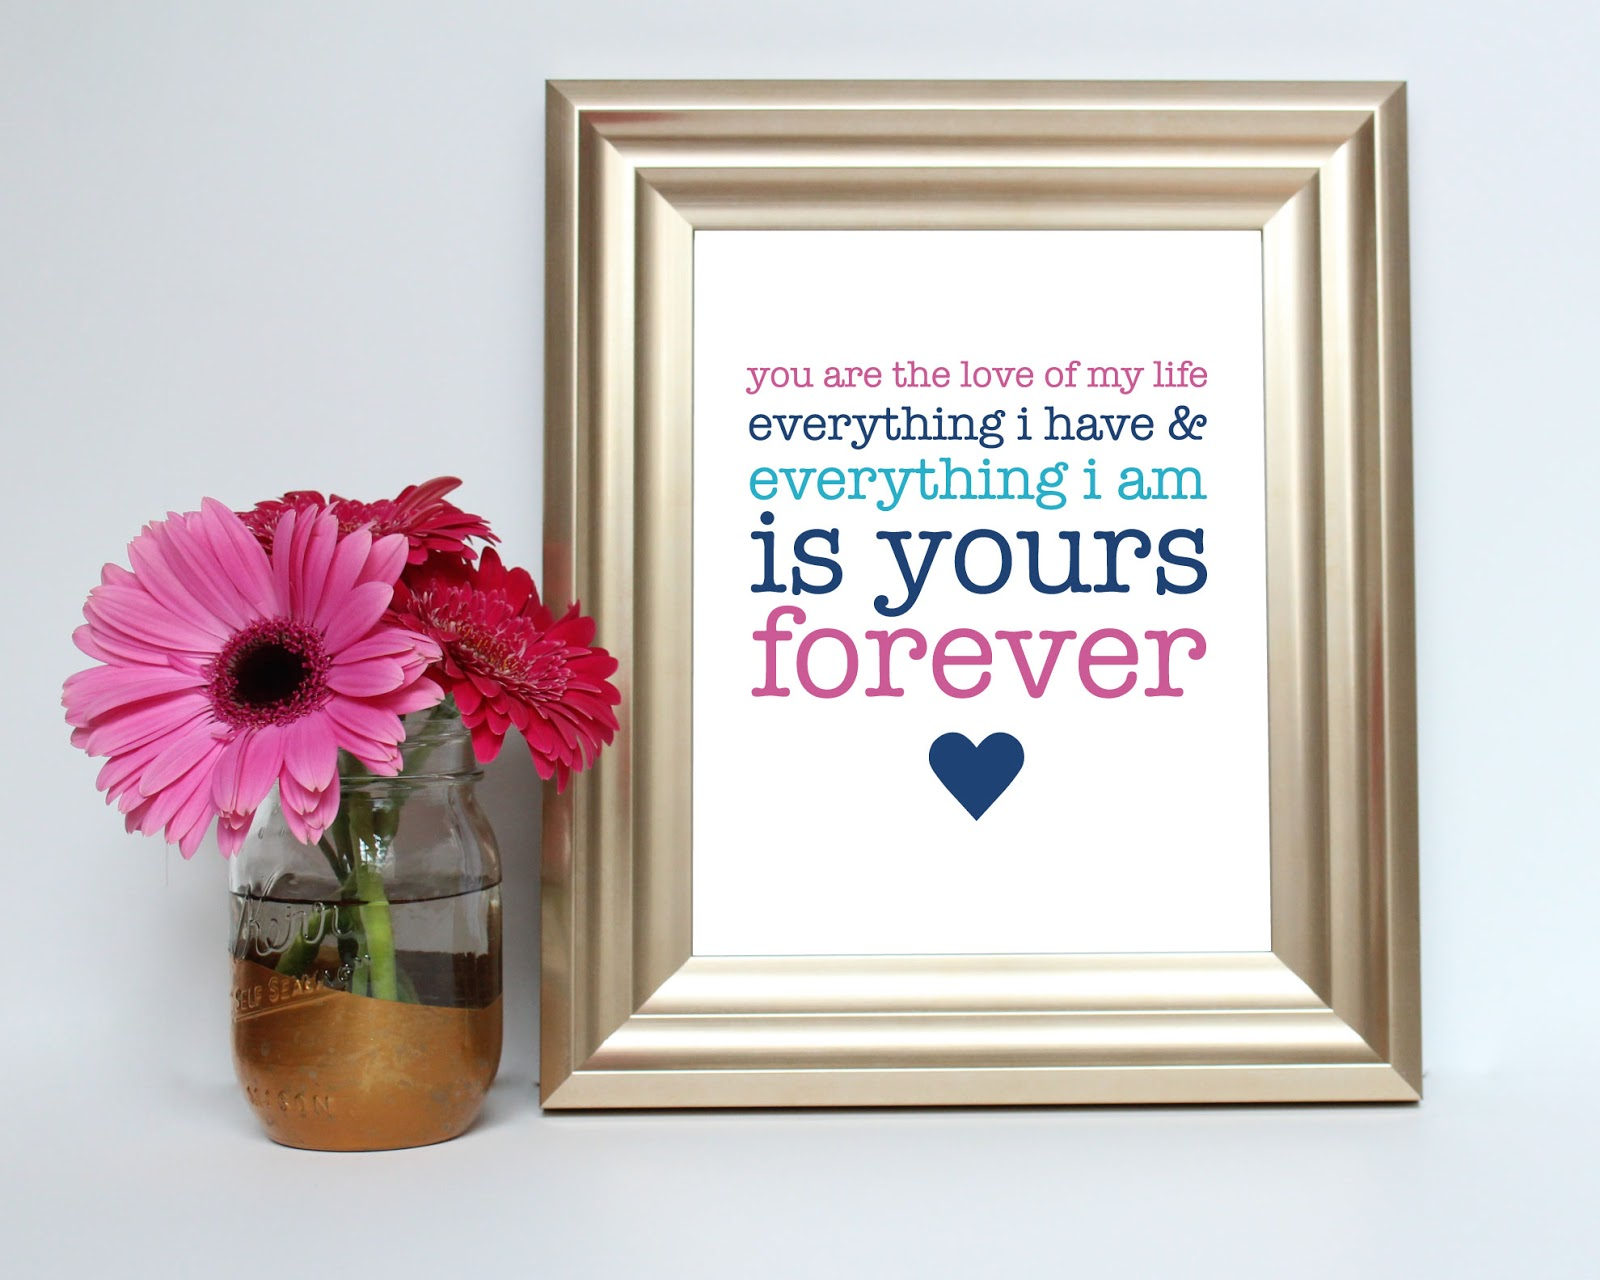 You are the love of my life. Everything I have & everything I am is yours. Forever. Printable by JM Print Shop